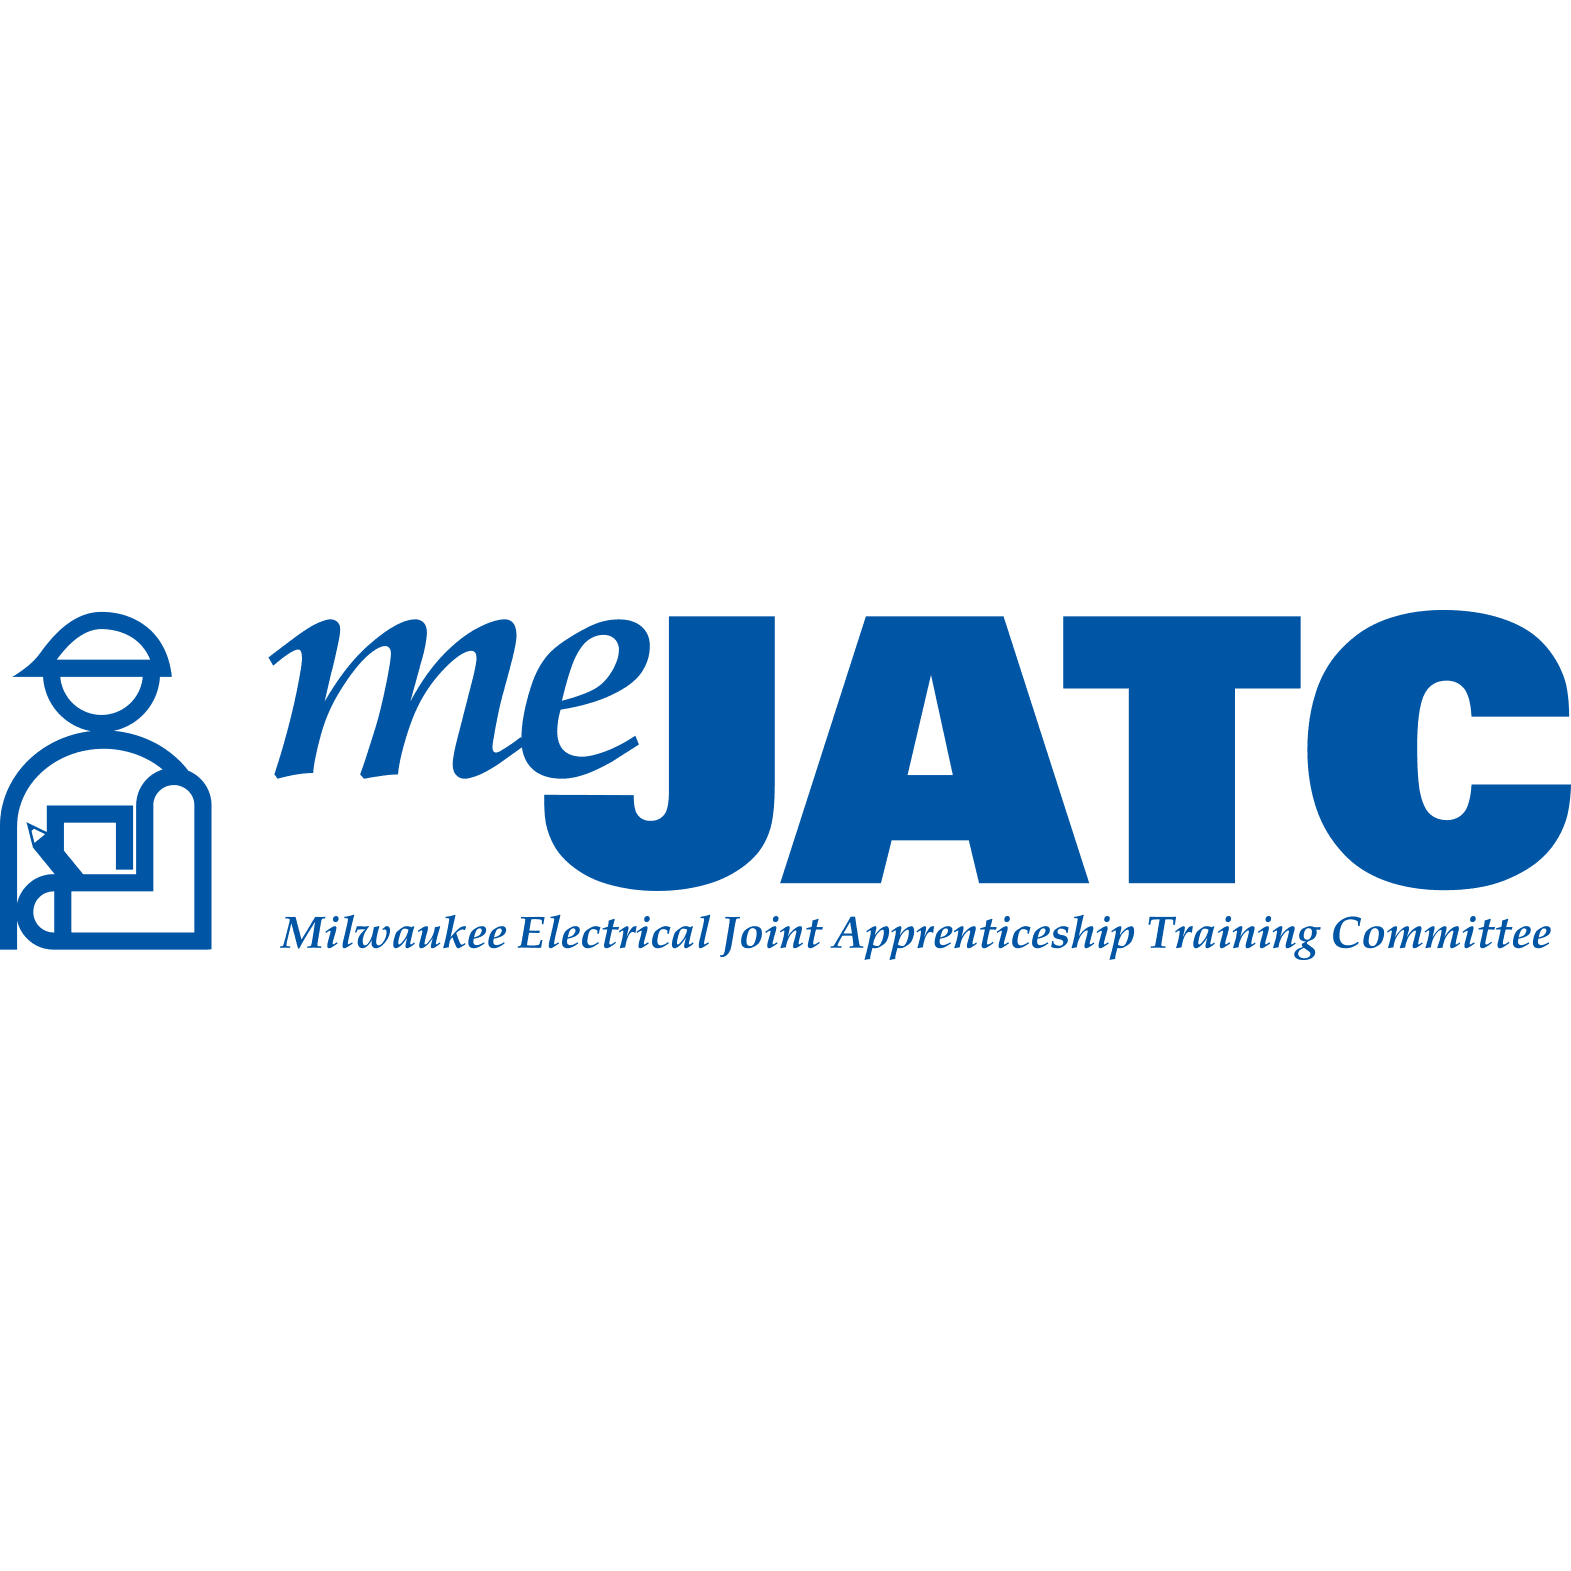 Milwaukee Electrical Joint Apprenticeship Training Committee